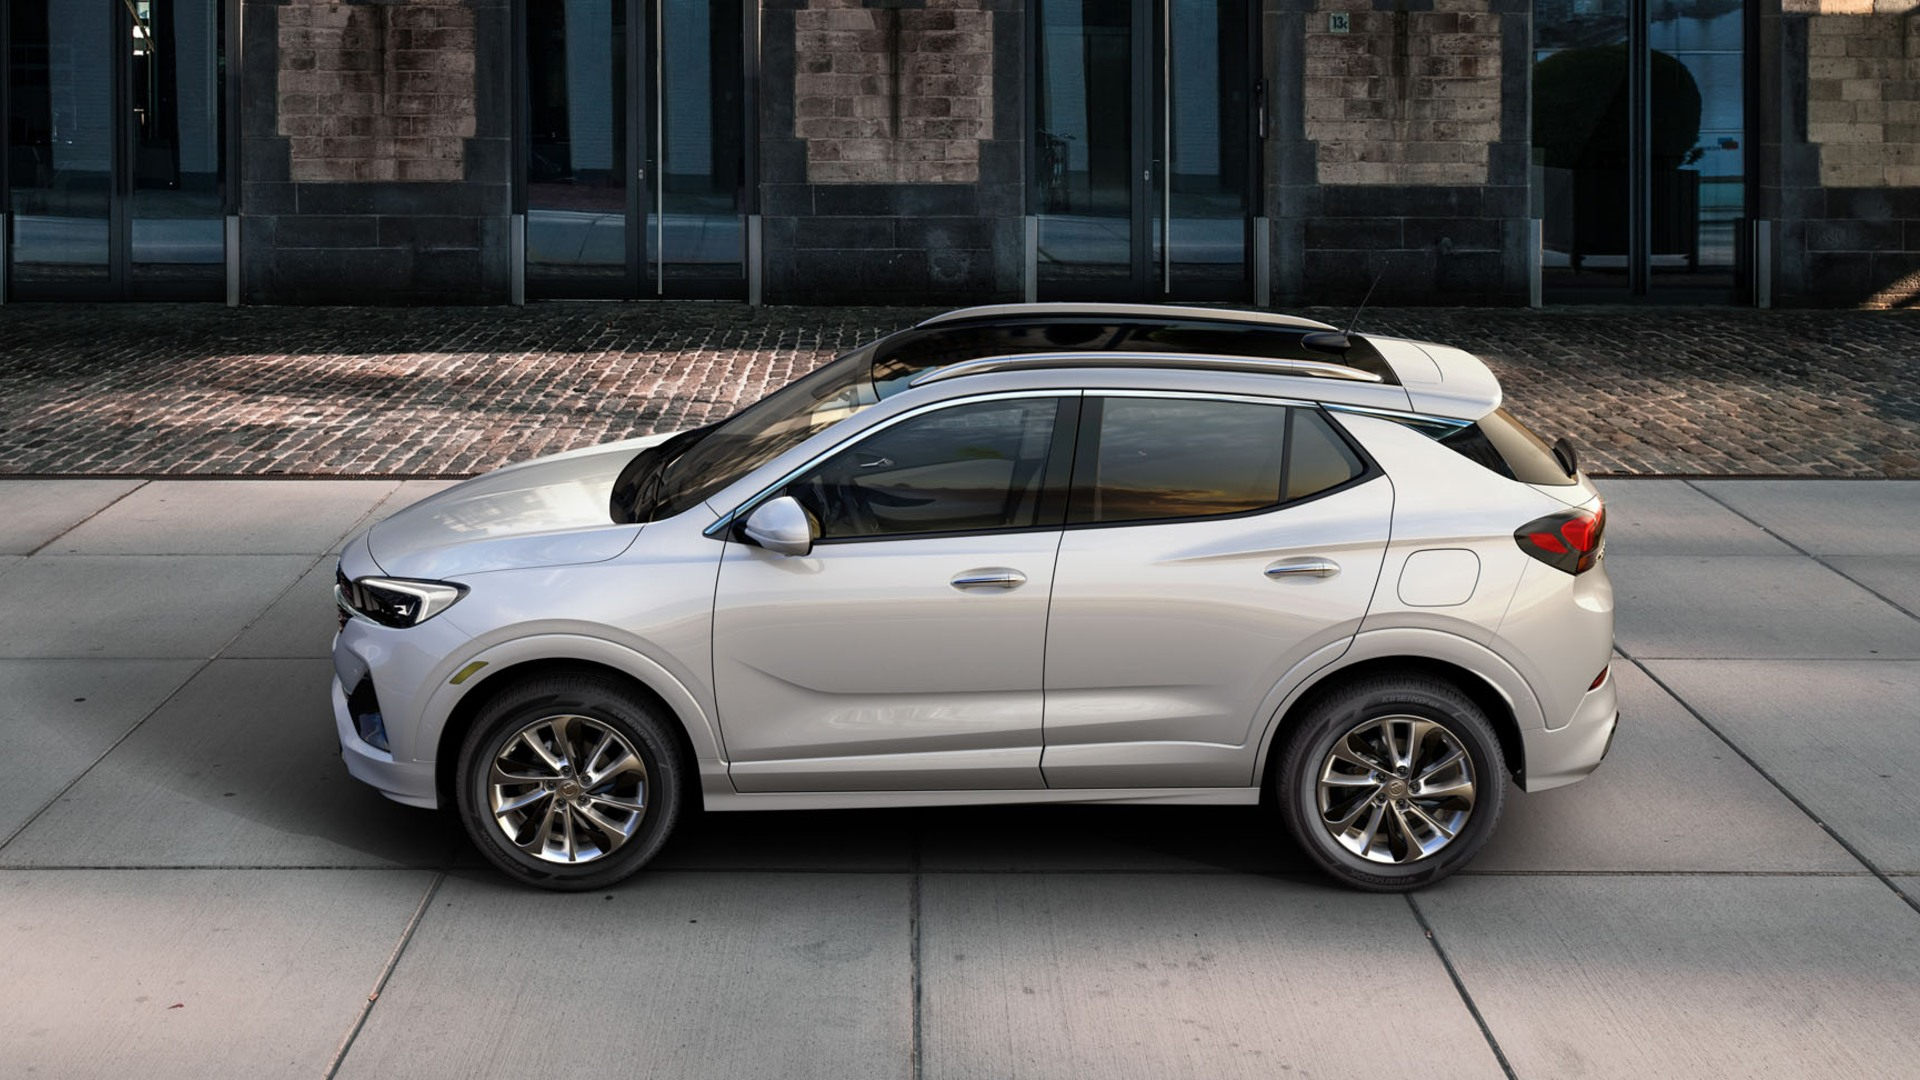 Buick Reveals U.s. Specs For The 2020 Encore Gx New 2022 Buick Encore Gx Ground Clearance, Horsepower, Interior Colors